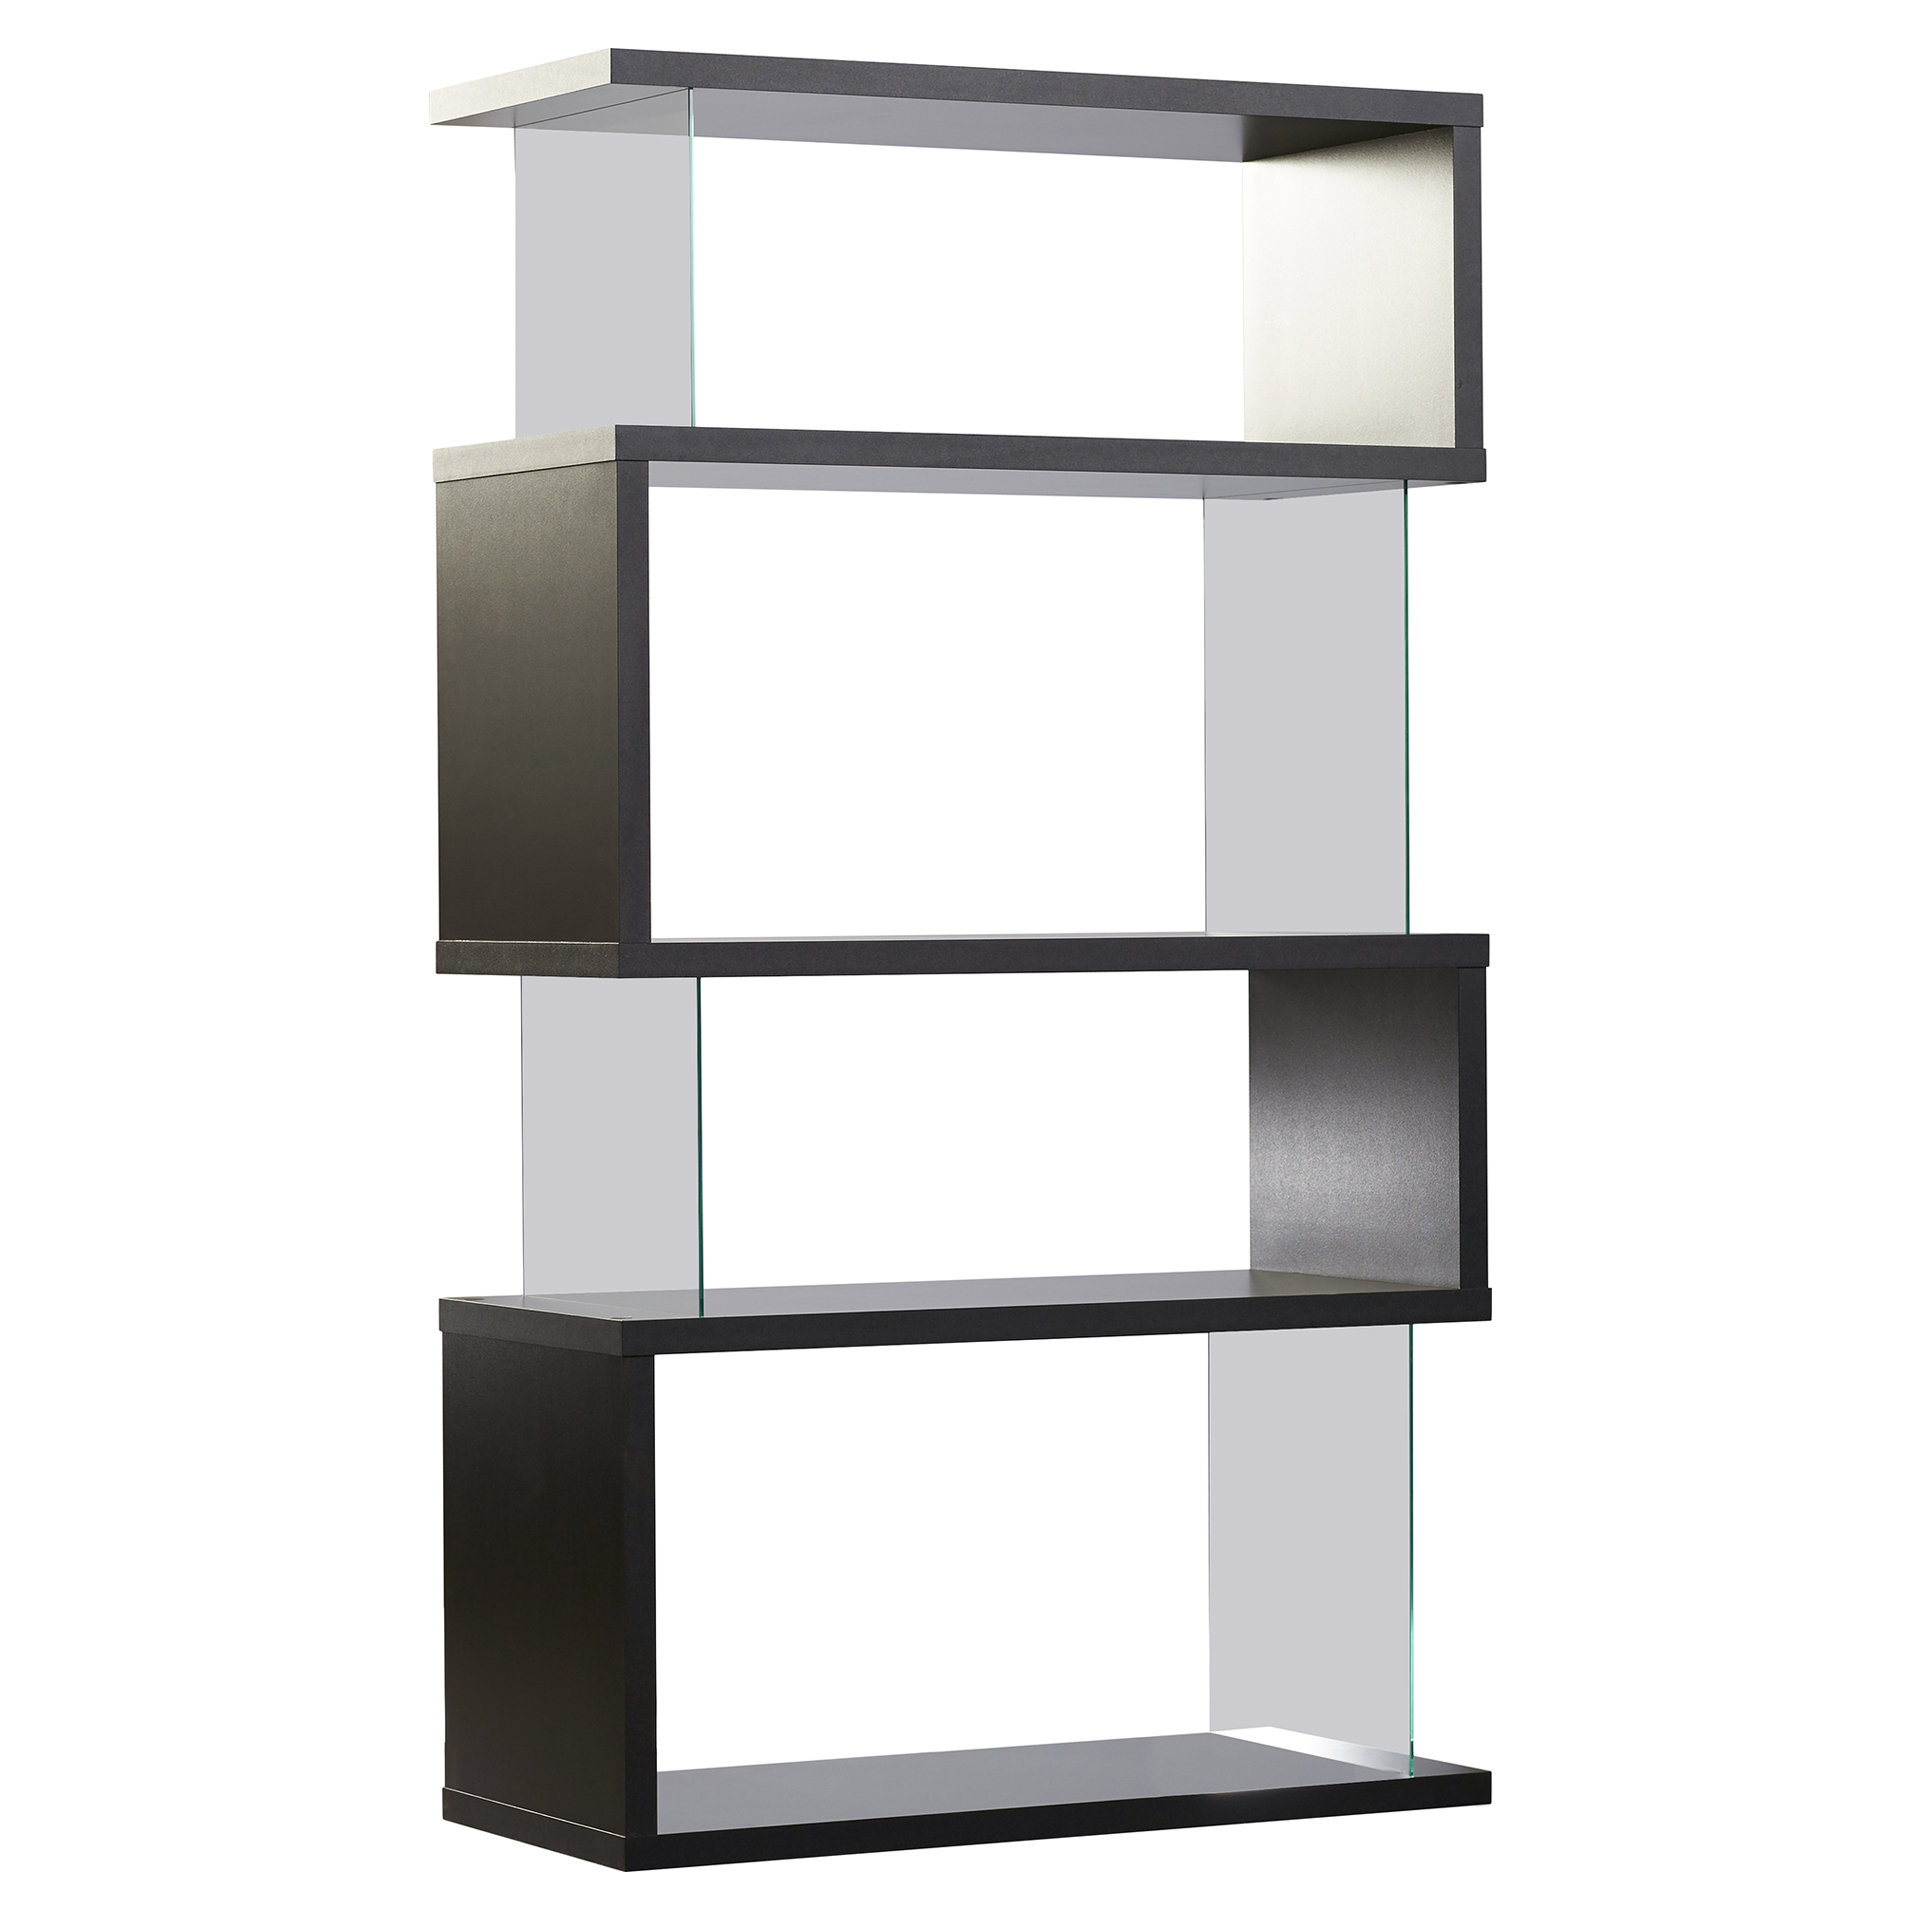 Trendy Ignacio Standard Bookcases For Ignacio Standard Bookcase (View 2 of 20)